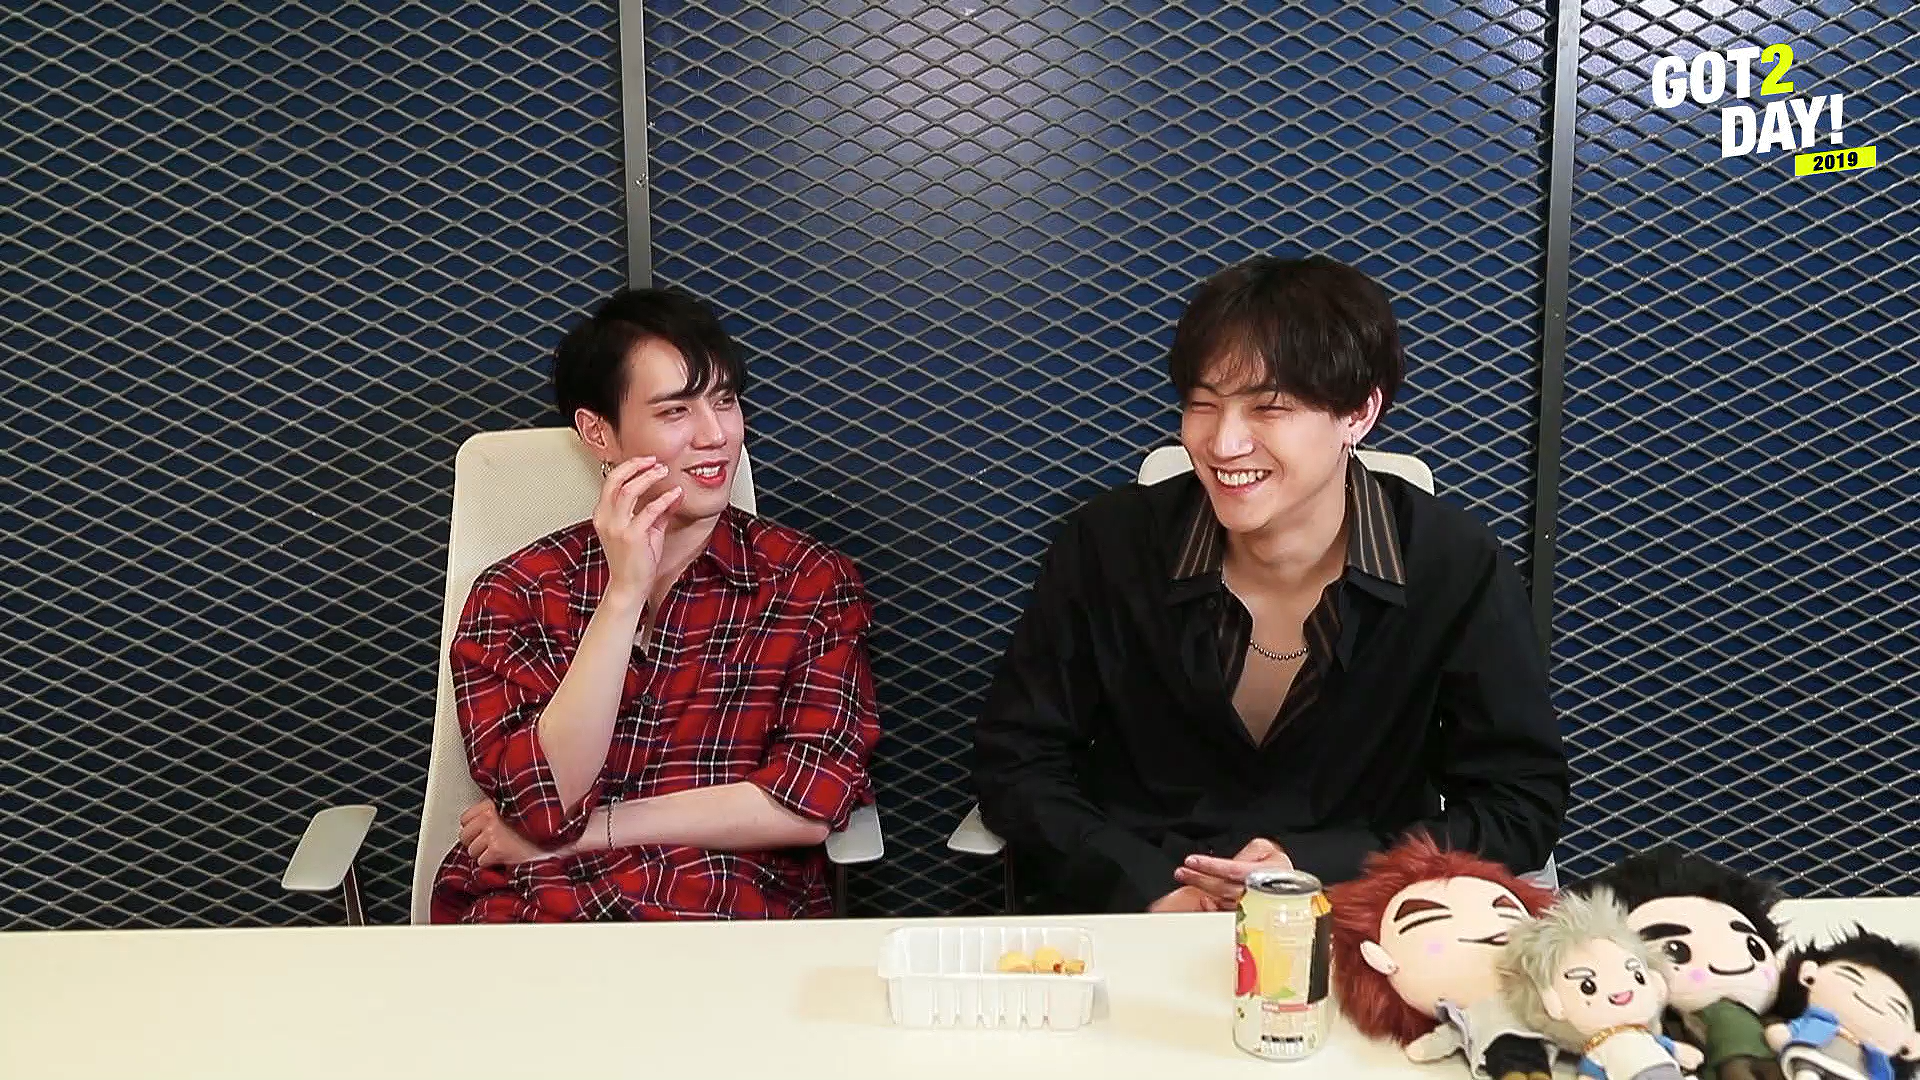 [GOT2DAY 2019] 15. JB & Yugyeom